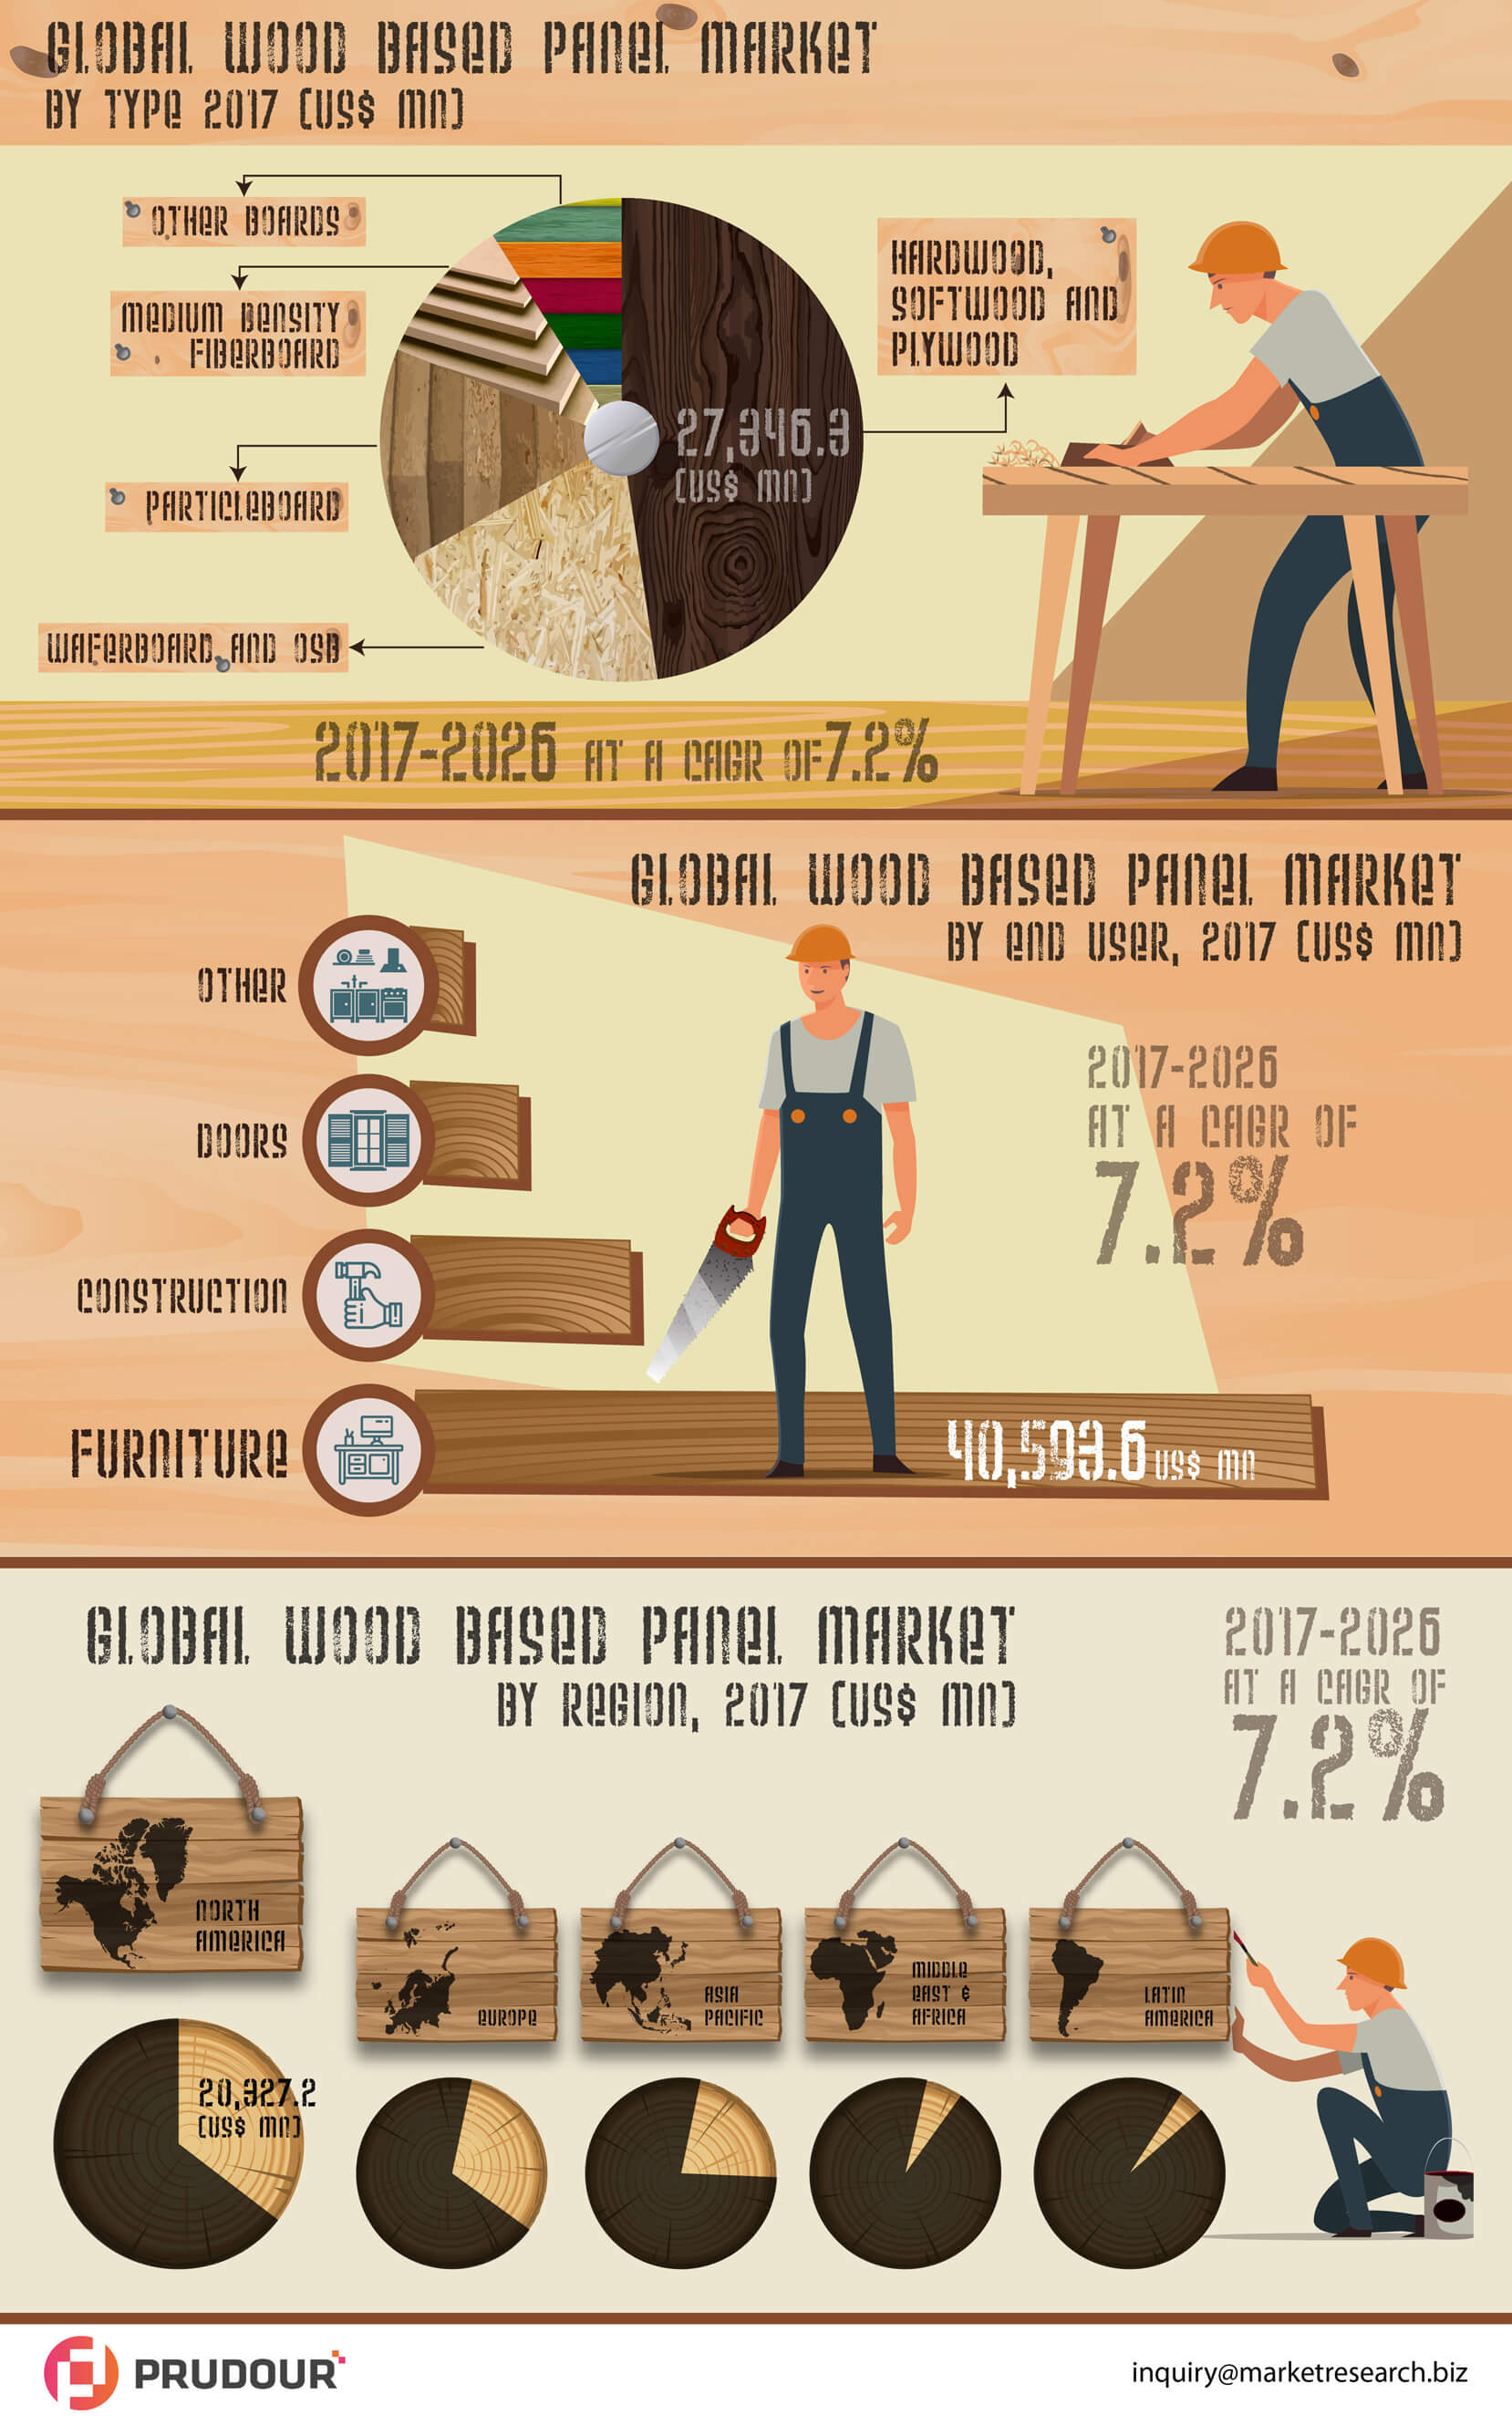 wood-based-panel-market-infographic-plaza